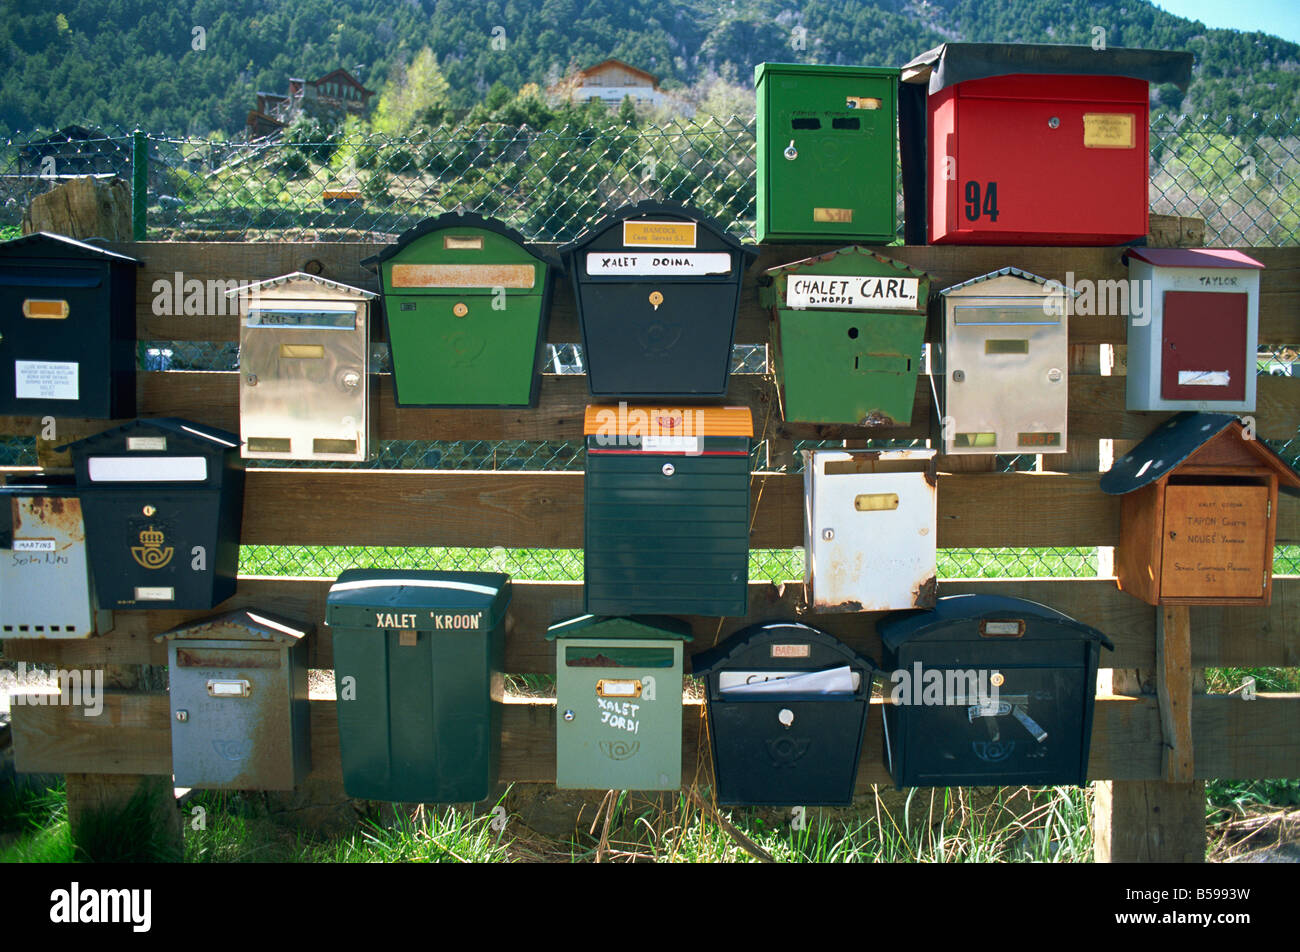 Post boxes, La Malana district, Andorra, Europe - Stock Image